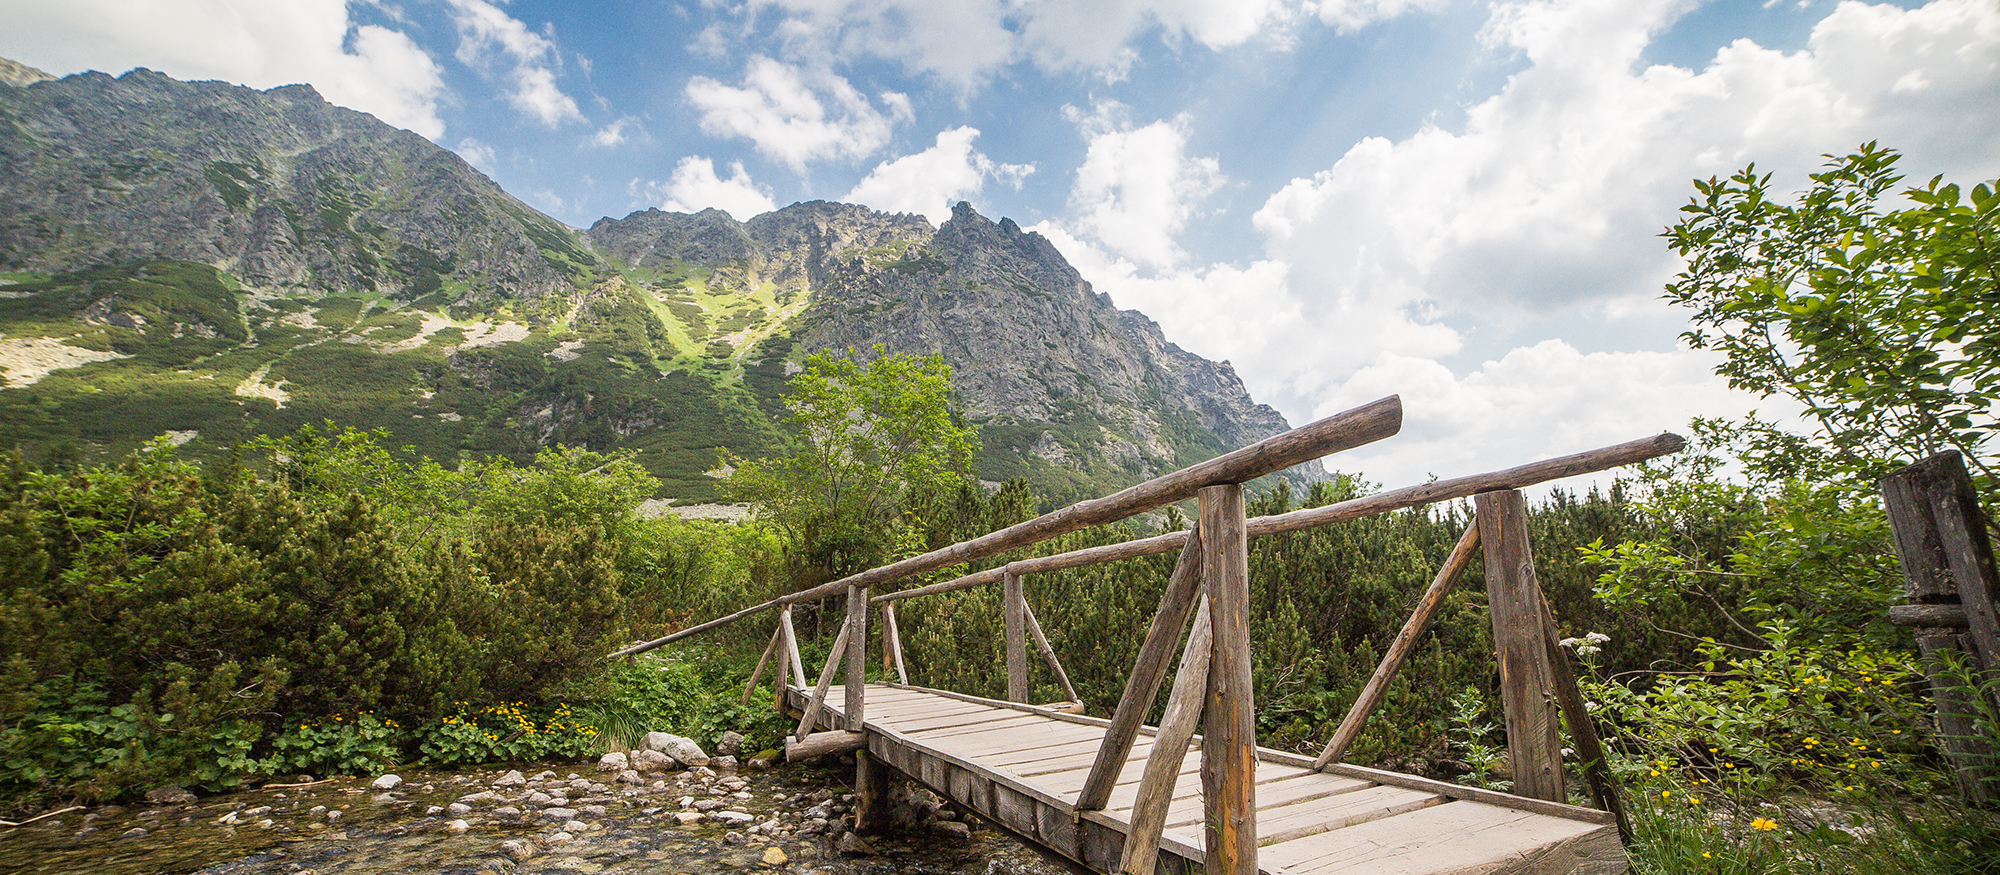 wooden-bridge-over-river-in-mountains